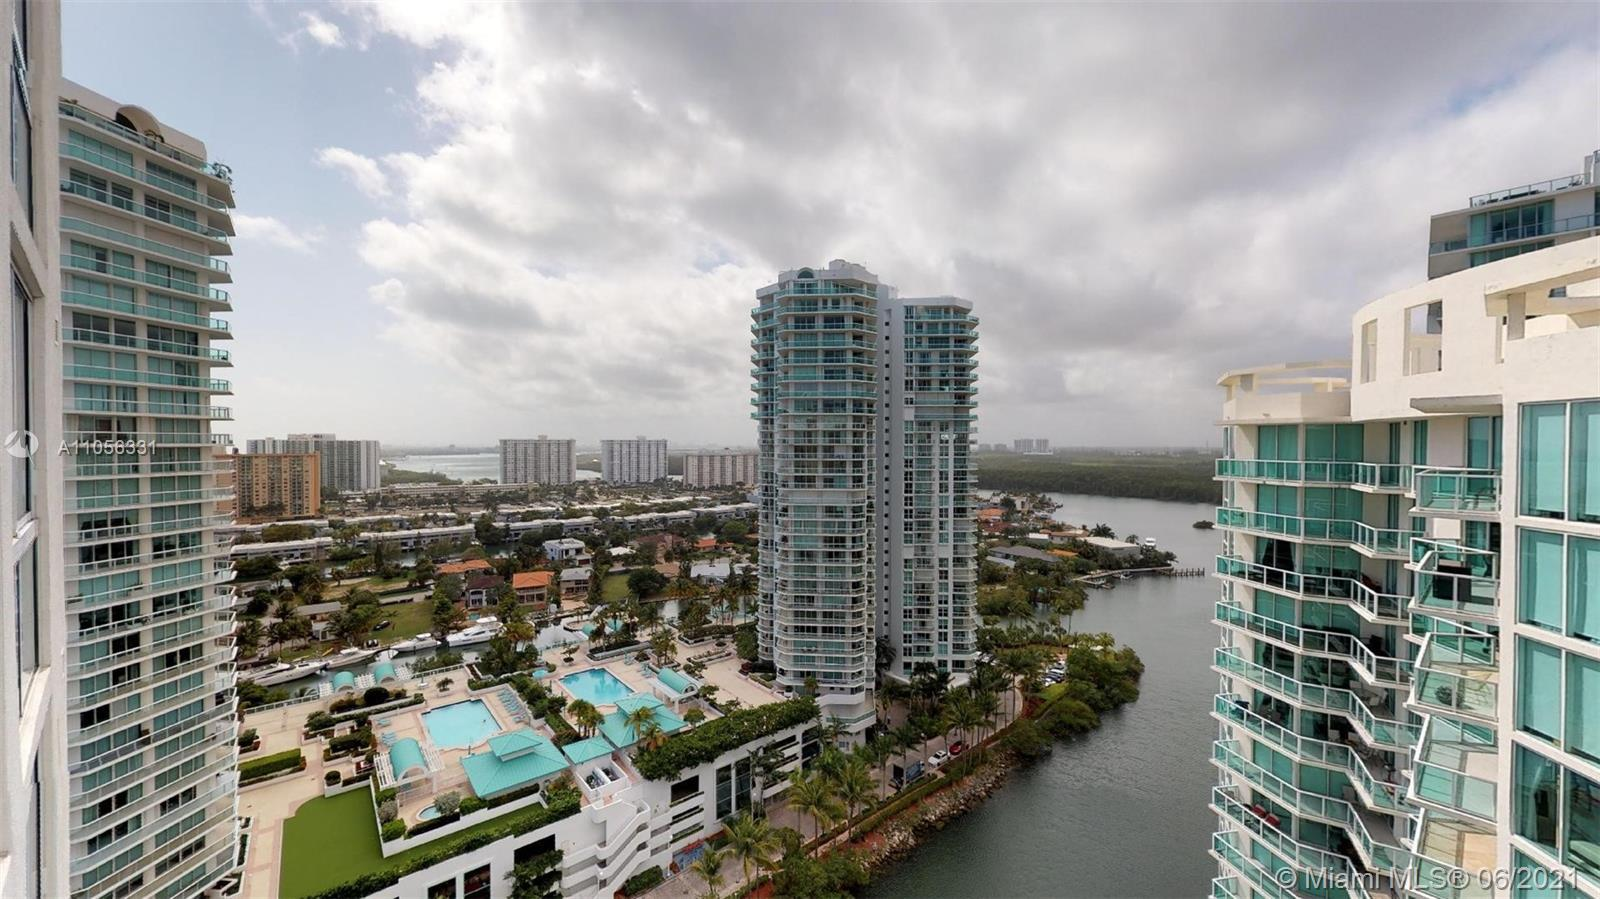 Stunning 4 bedroom/ 4.5 bathroom Penthouse in the heart of Sunny Isles! Enjoy the spectacular views